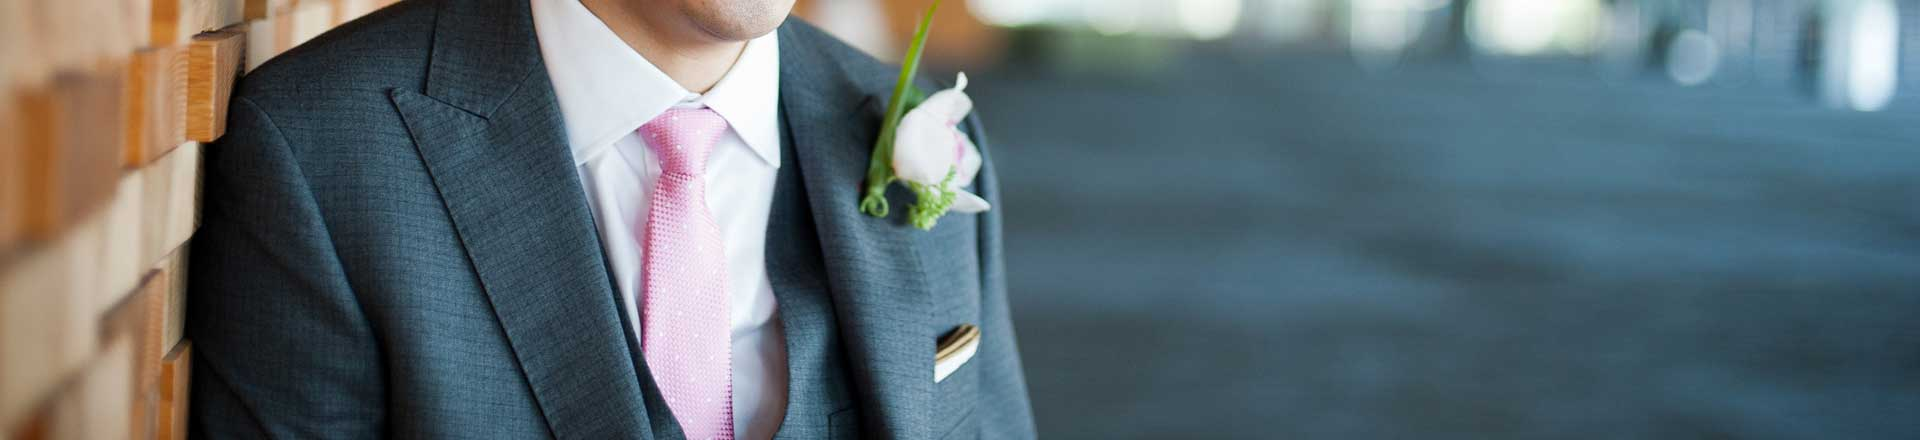 Suit and tie: how to dress for any wedding – Indochino Blog